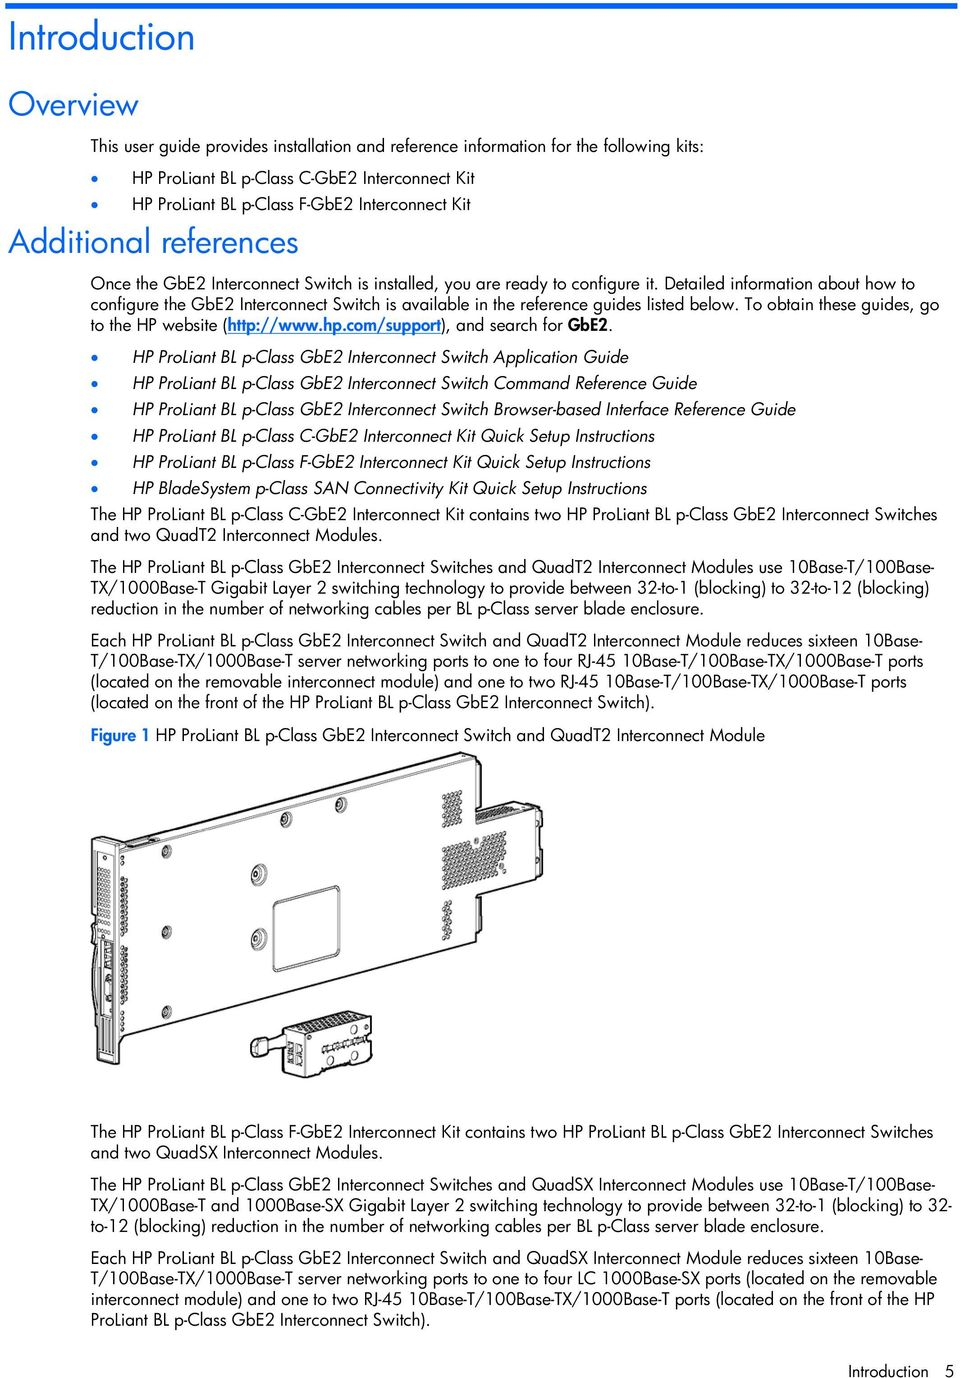 Detailed information about how to configure the GbE2 Interconnect Switch is available in the reference guides listed below. To obtain these guides, go to the HP website (http://www.hp.